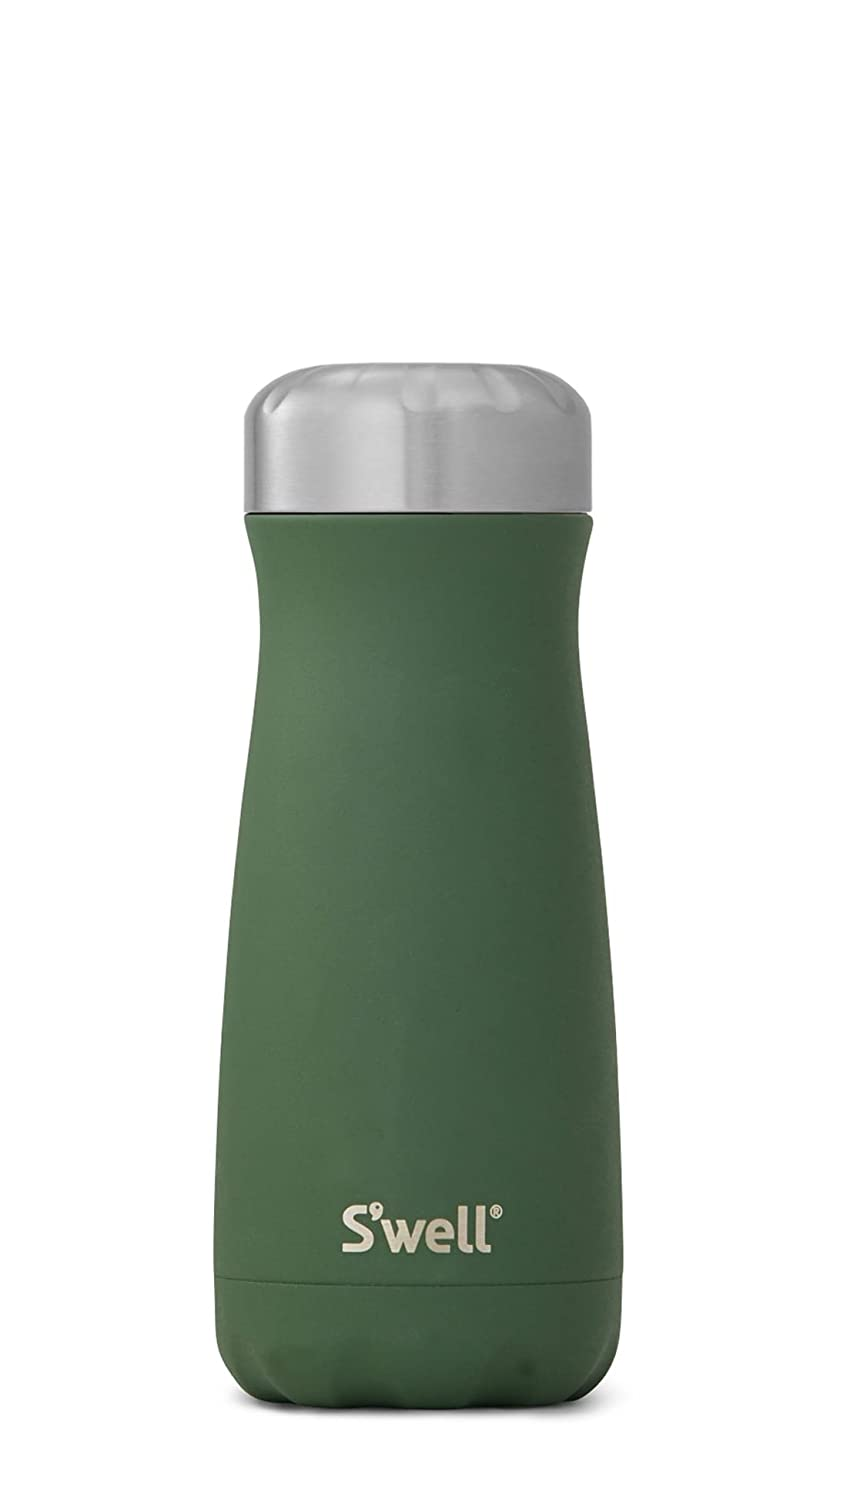 (470ml, Green Jasper) - S'well Stainless Steel Travel Mug, 470ml, Green Jasper B076GNN6RN  Green Jasper 16oz